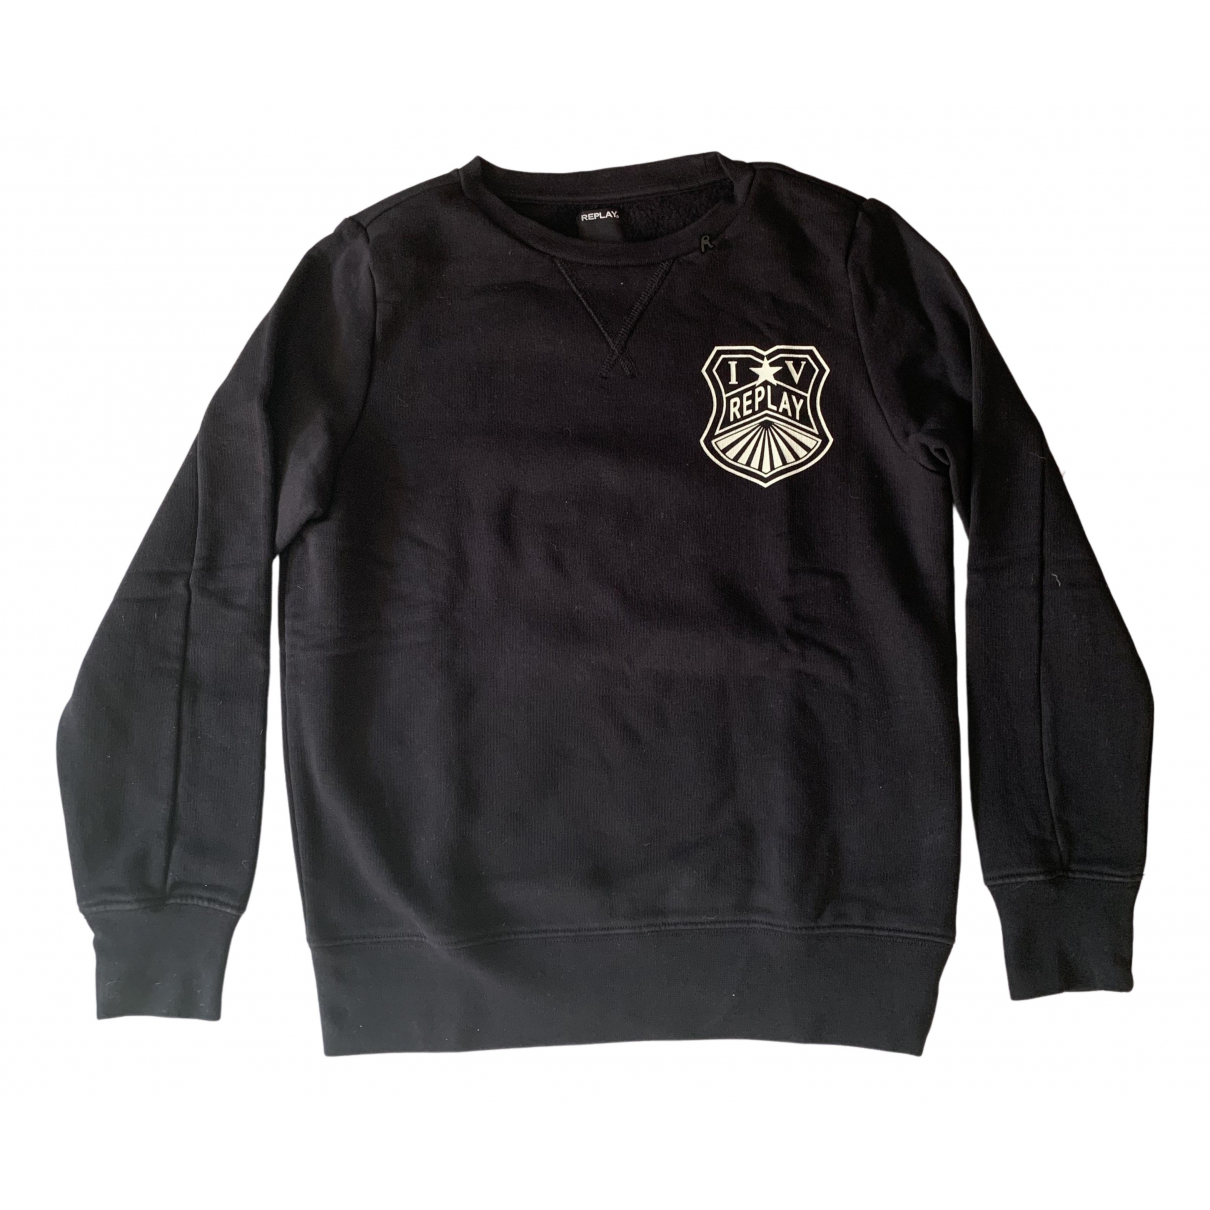 Replay N Black Cotton  top for Kids 12 years - XS FR